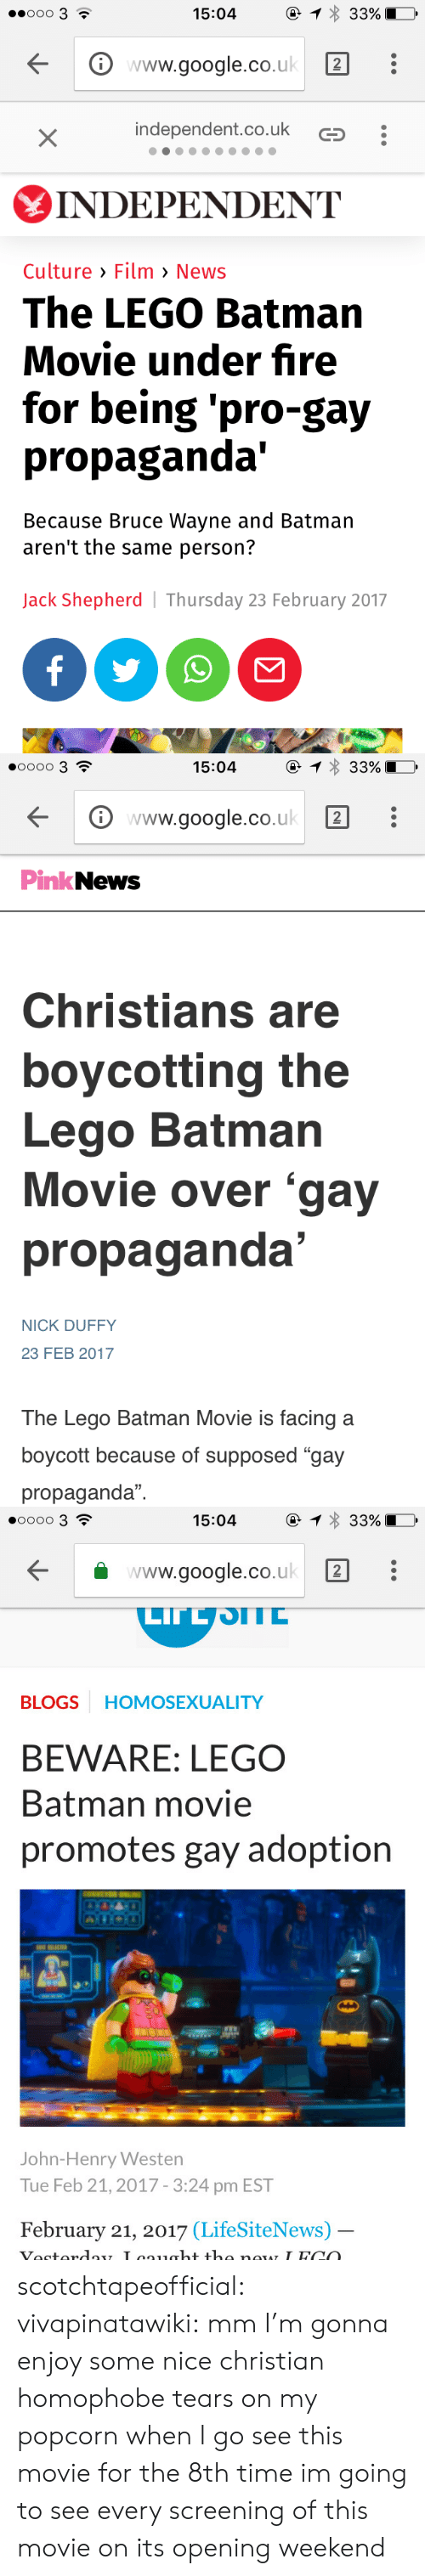 """lego batman: 1 33%  ooo 3 ?  15:04  www.google.co.uk  independent.co.uk  X  INDEPΕNDENT  Culture Film > News  The LEGO Batman  Movie under fire  for being 'pro-gay  propaganda'  Because Bruce Wayne and Batman  aren't the same person?  Jack Shepherd